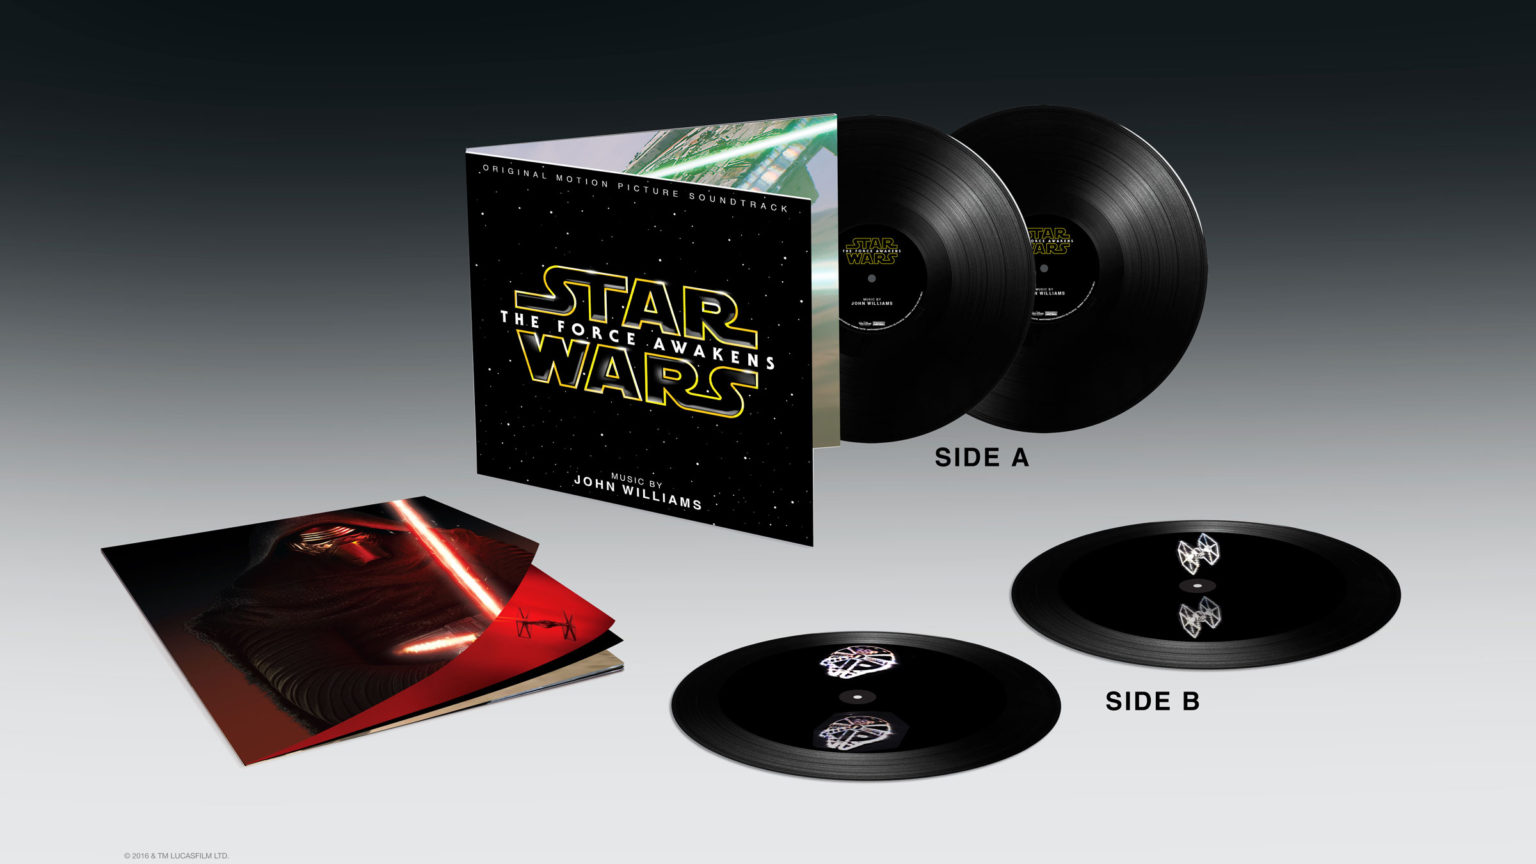 Star Wars: The Force Awakens vinyl